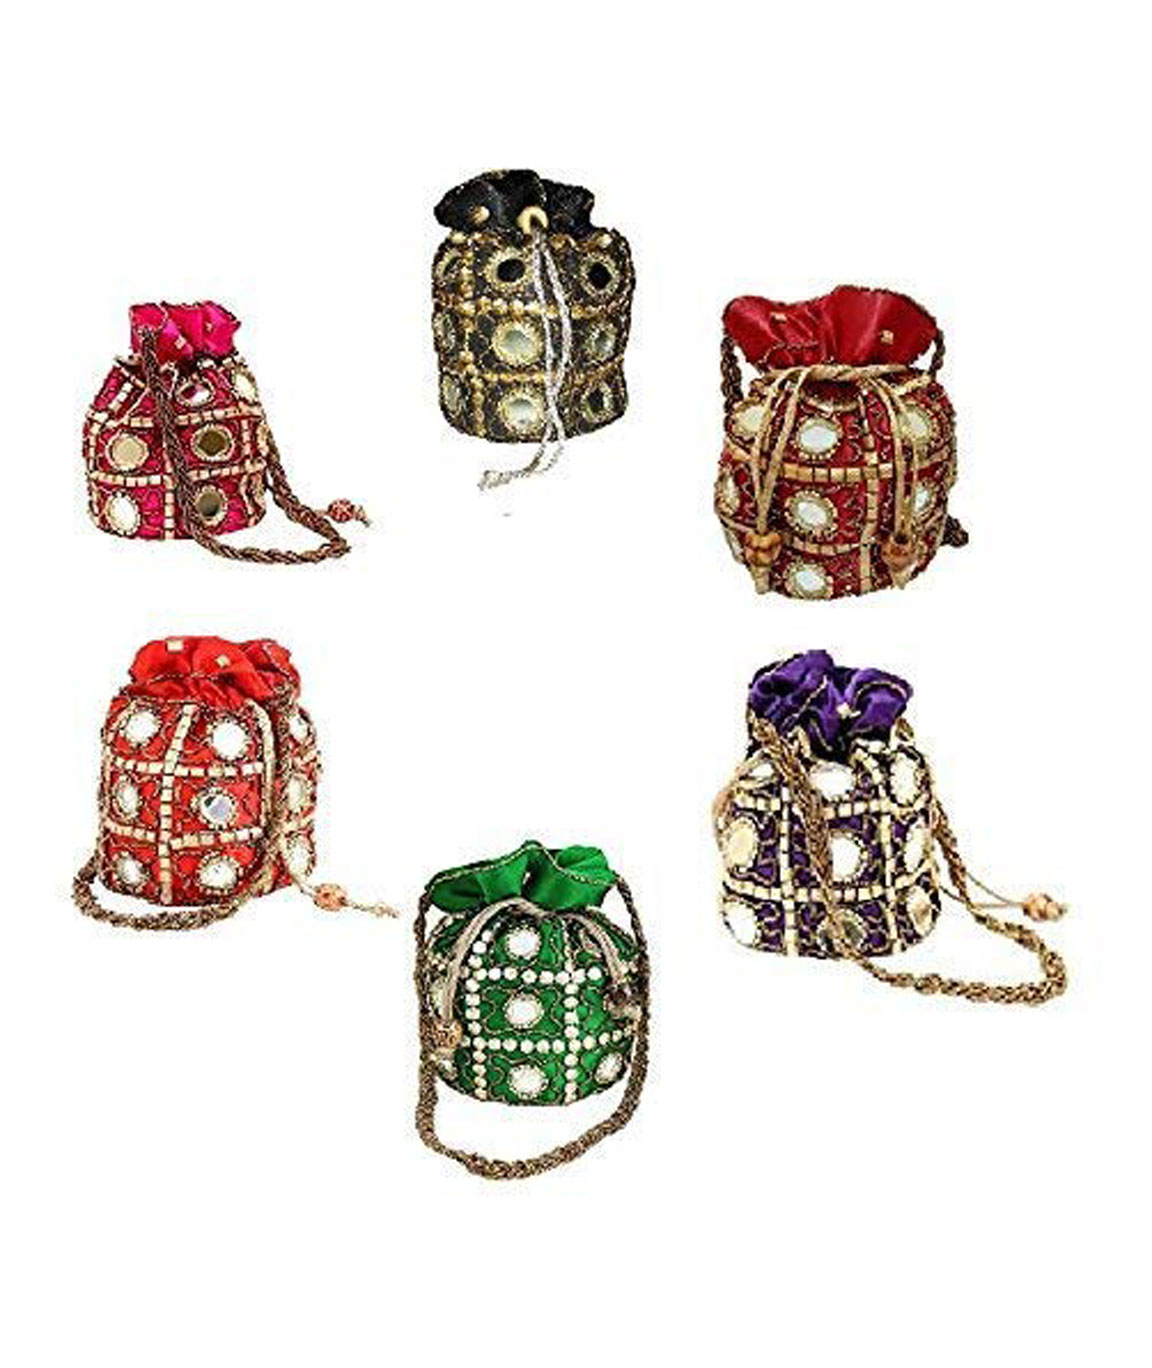 DN Enterprises Fashion Women`s Clutch Potli Bag - Set of 6(Multicolour)